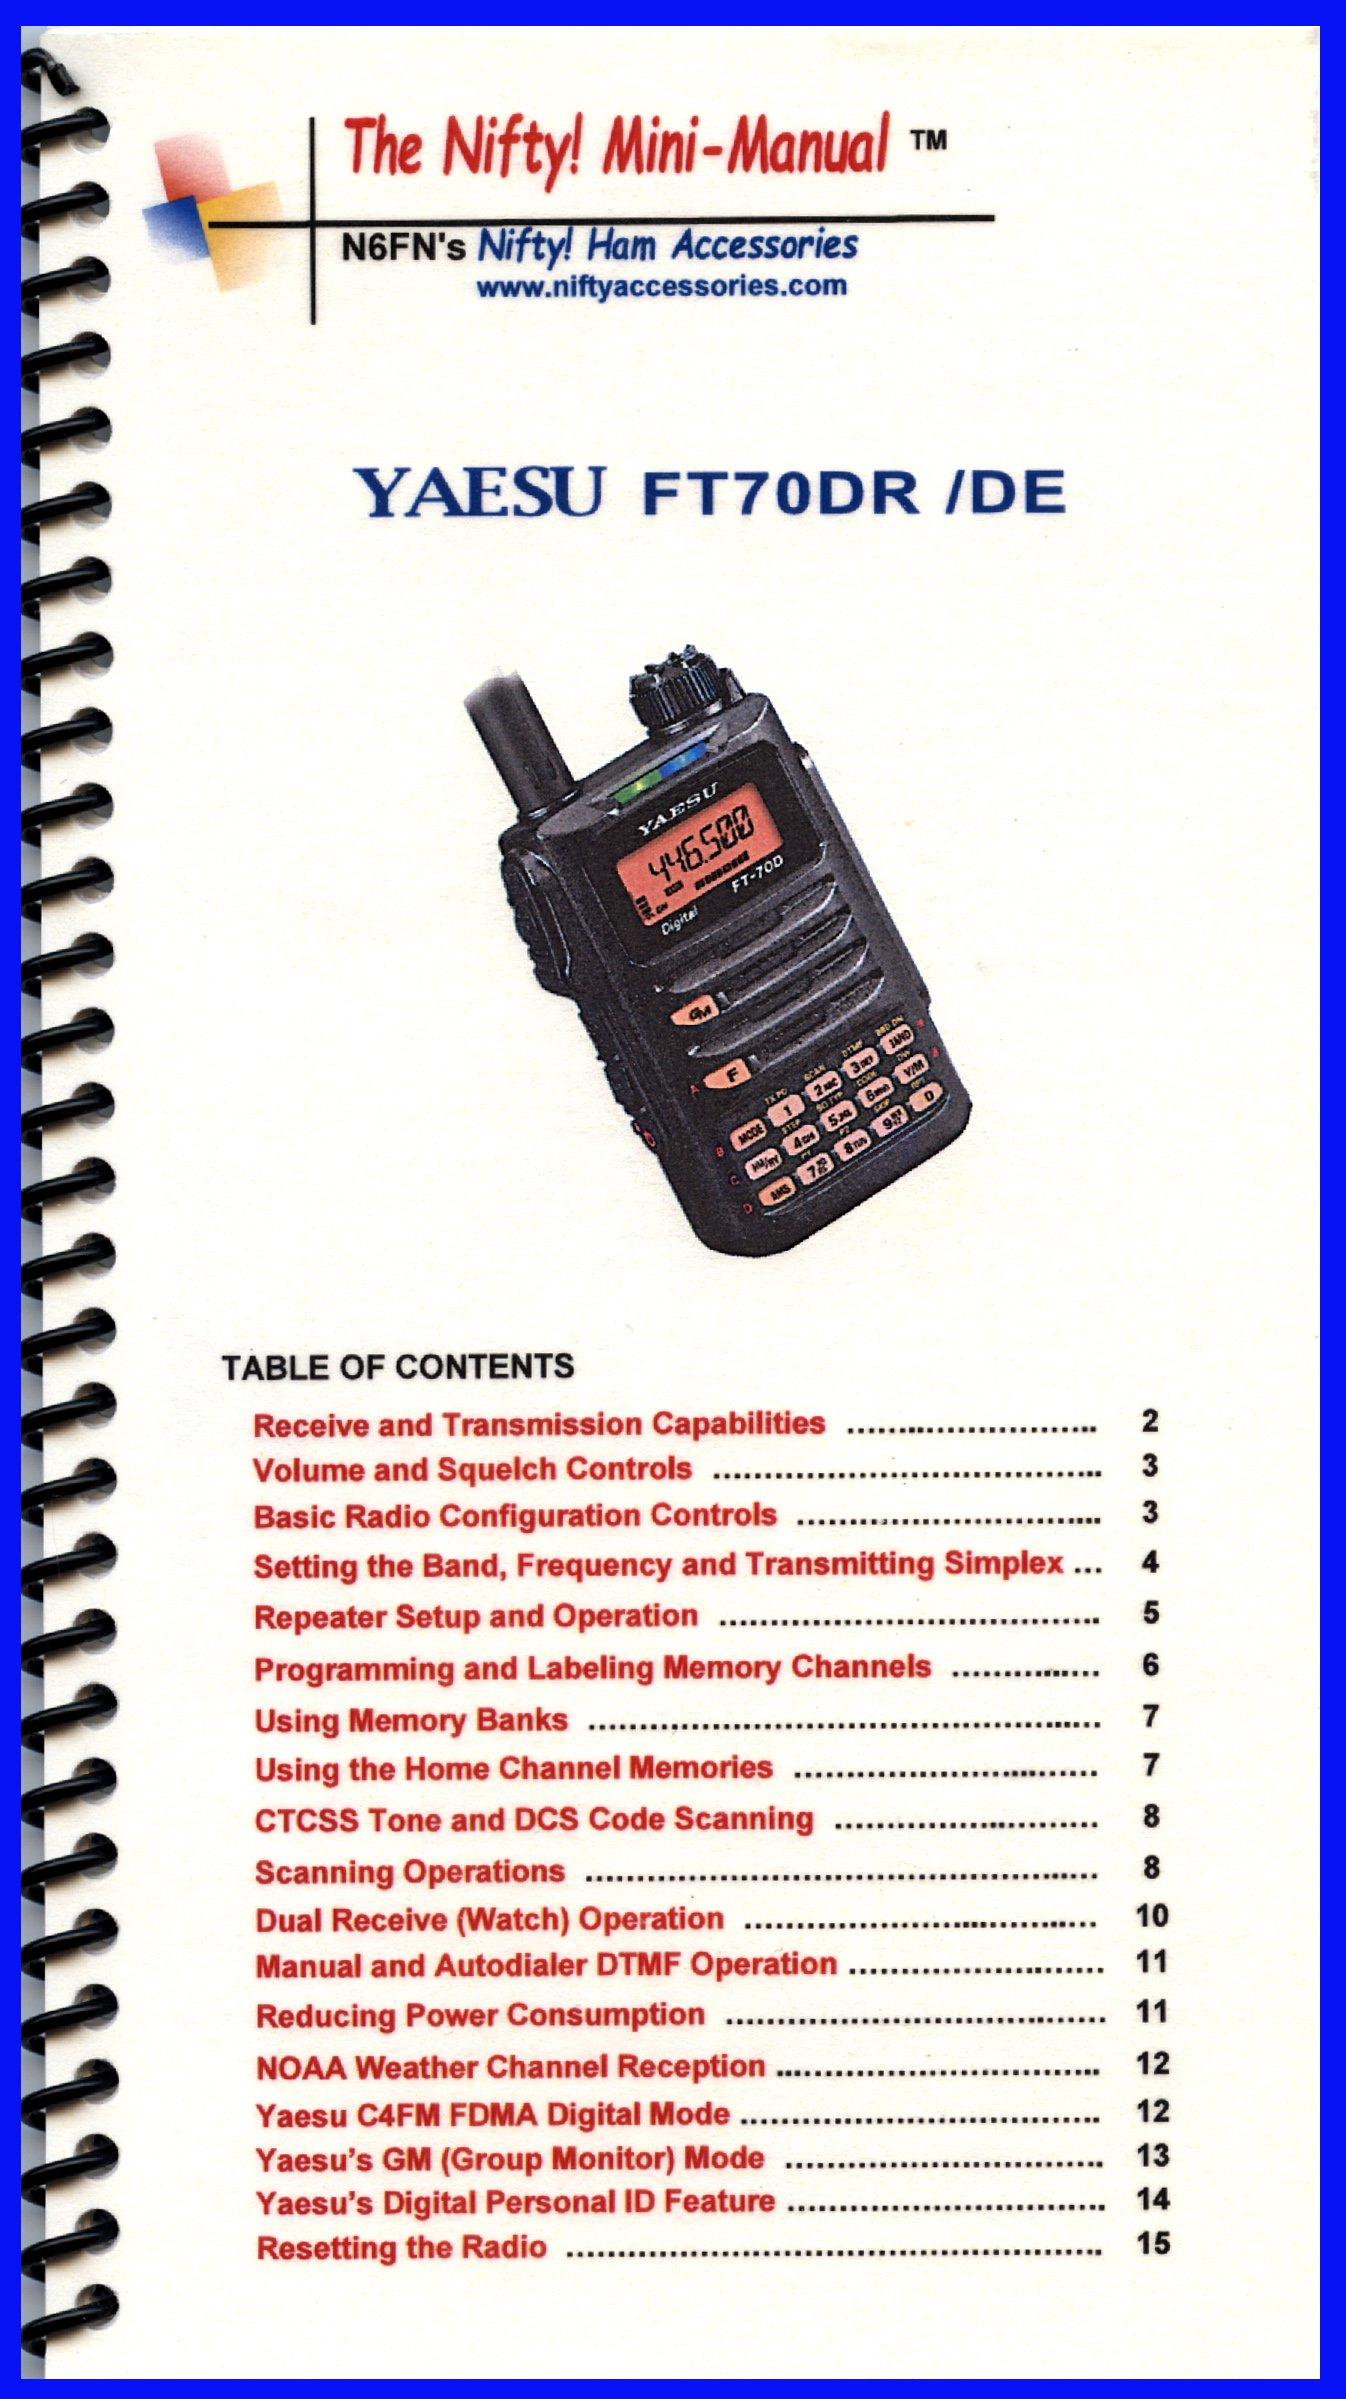 yaesu ft 70dr mini manual by nifty accessories nifty accessories rh amazon com Yaesu Ham Radio Sales kenwood ham radio service manuals